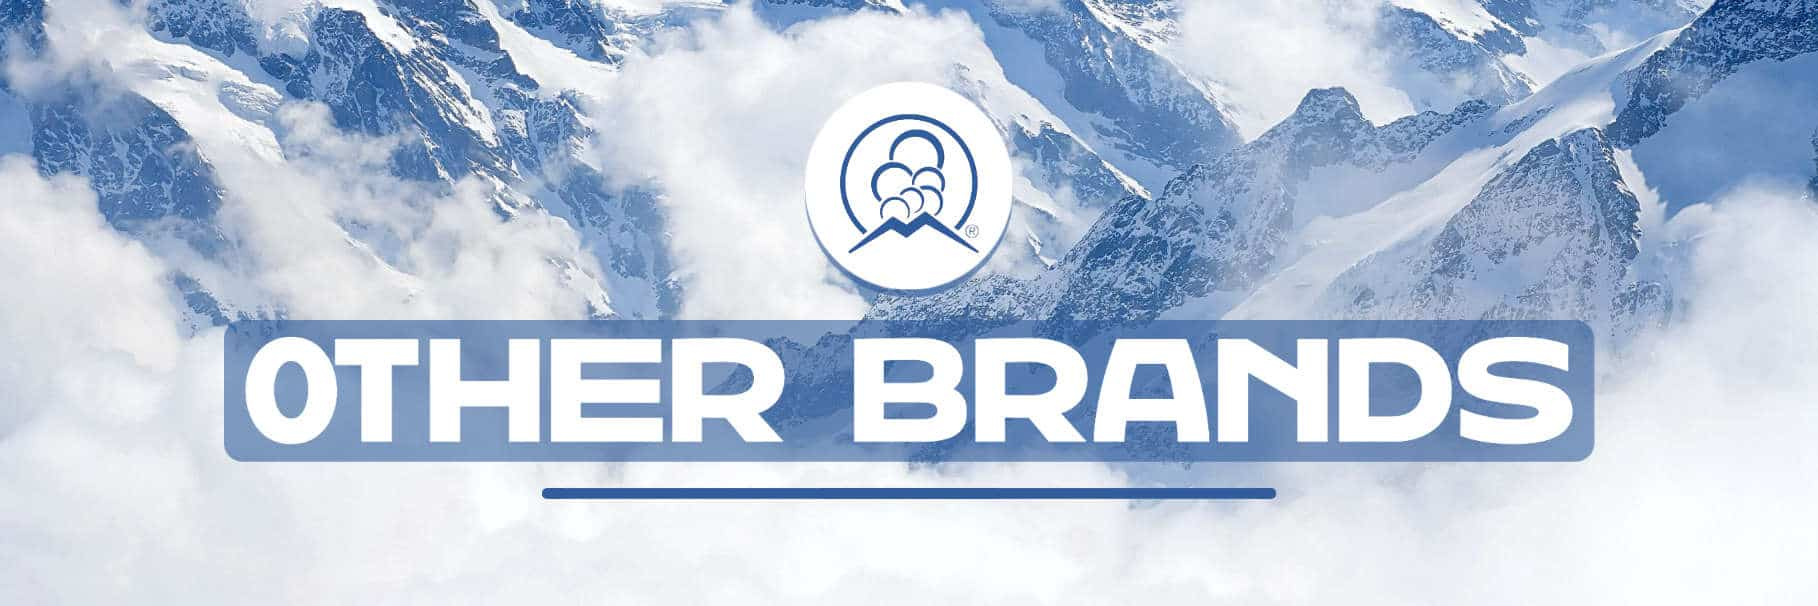 Other Brands Banner